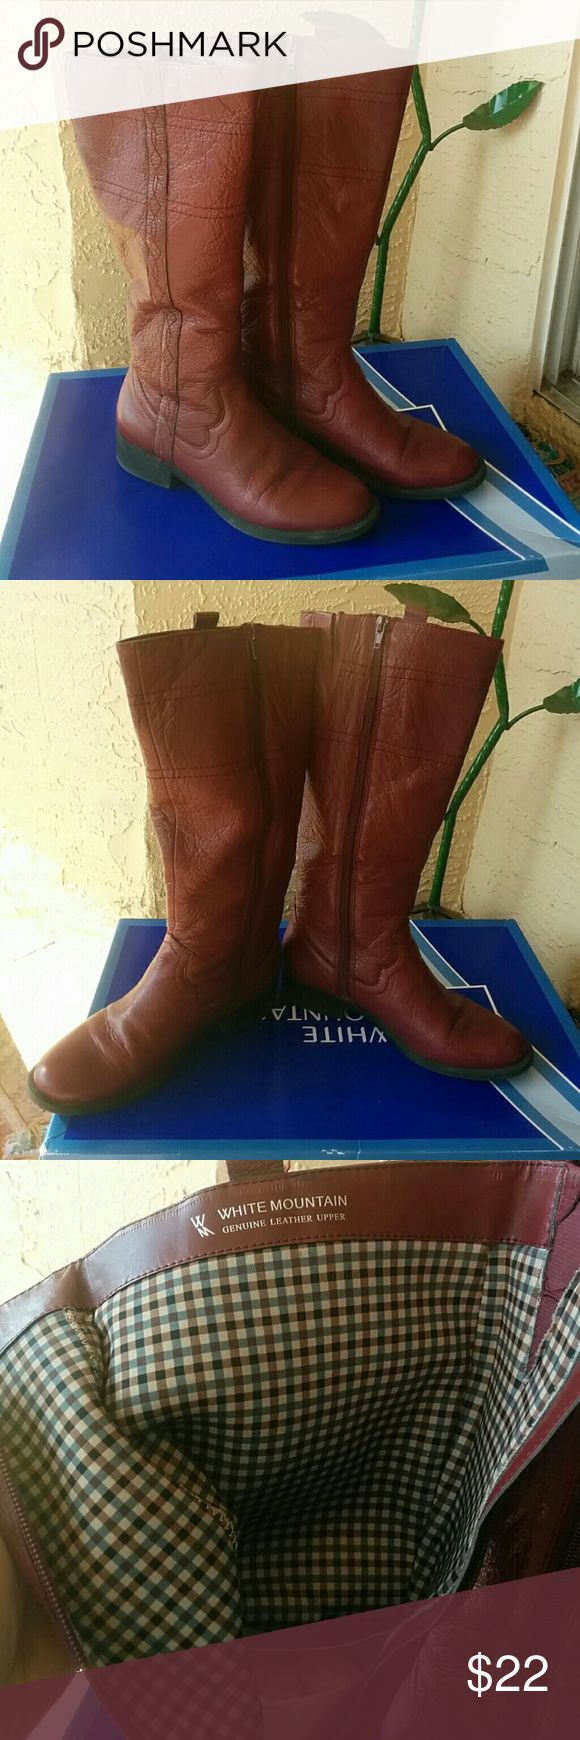 Burgundy White Mountain Riding Boots Burgundy riding boots. Have some wear to them but still a cool pair of riding boots. White mountain Shoes